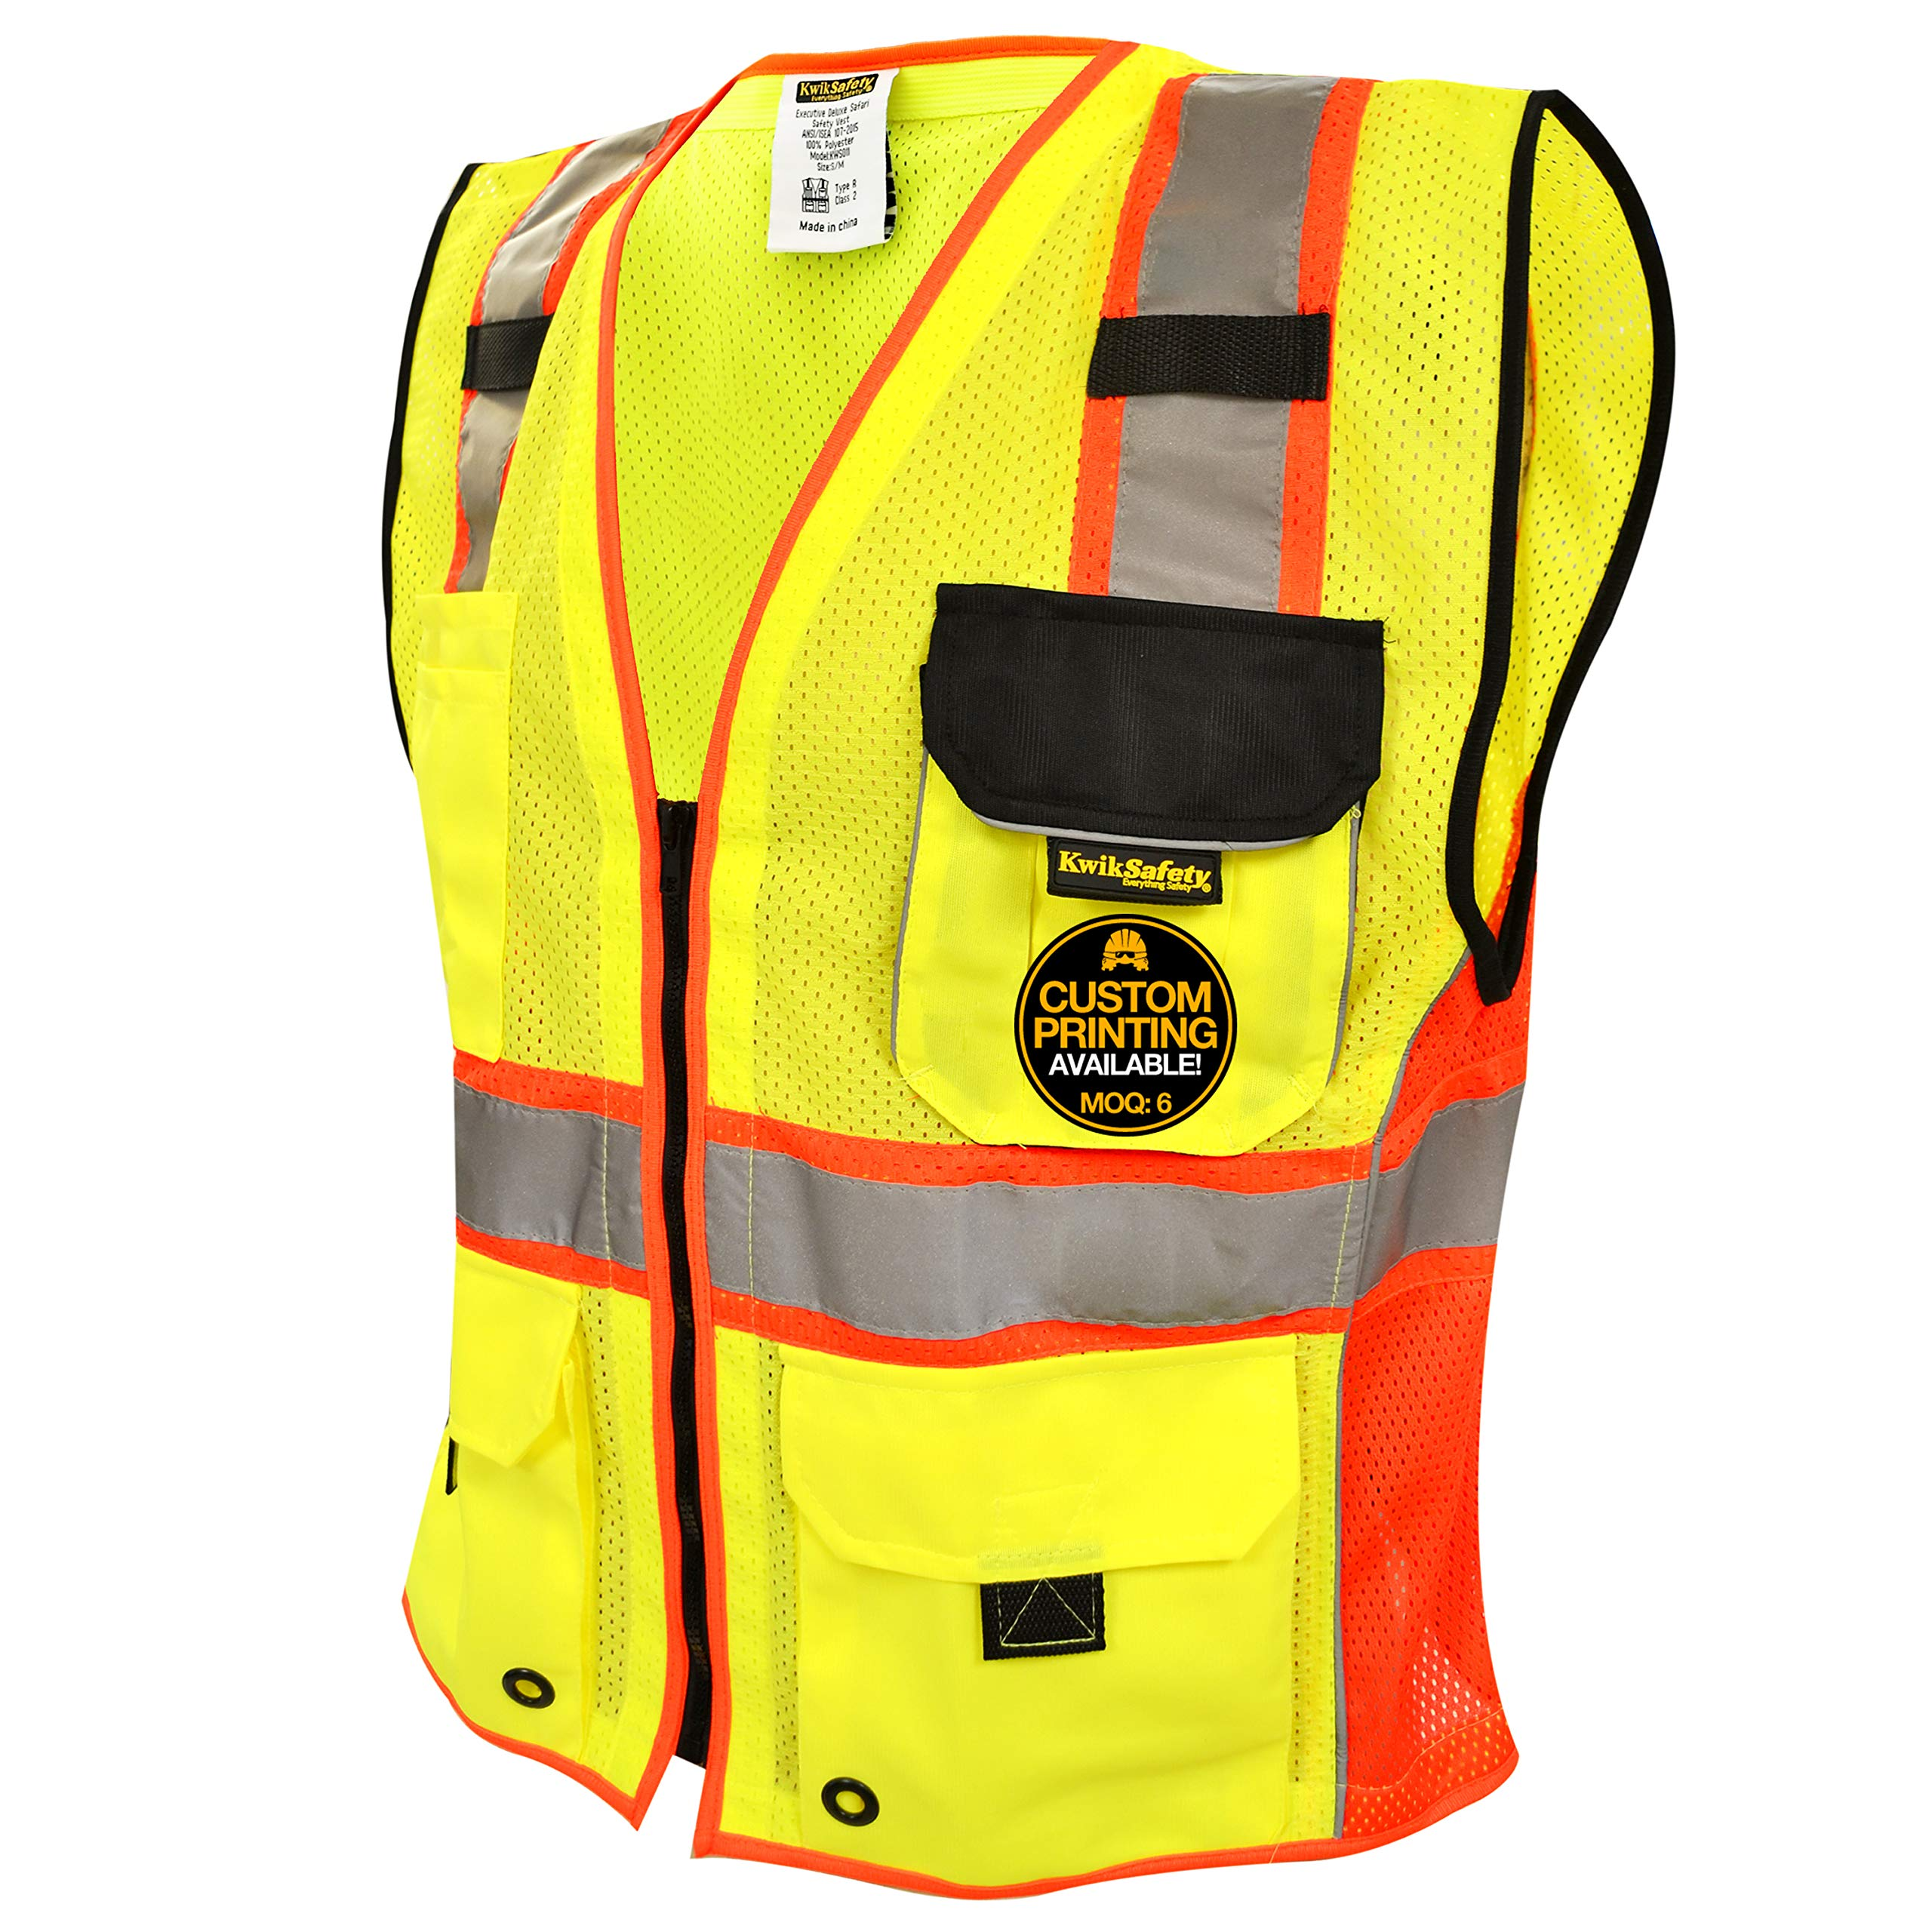 KwikSafety SUPREME | Class 2 Safety Vest | 360° High Visibility Reflective ANSI Compliant Work Wear | Hi Vis Breathable Mesh 7 Pockets | Men Women Regular to Over Sized Fit | Yellow Red Trim L/XL